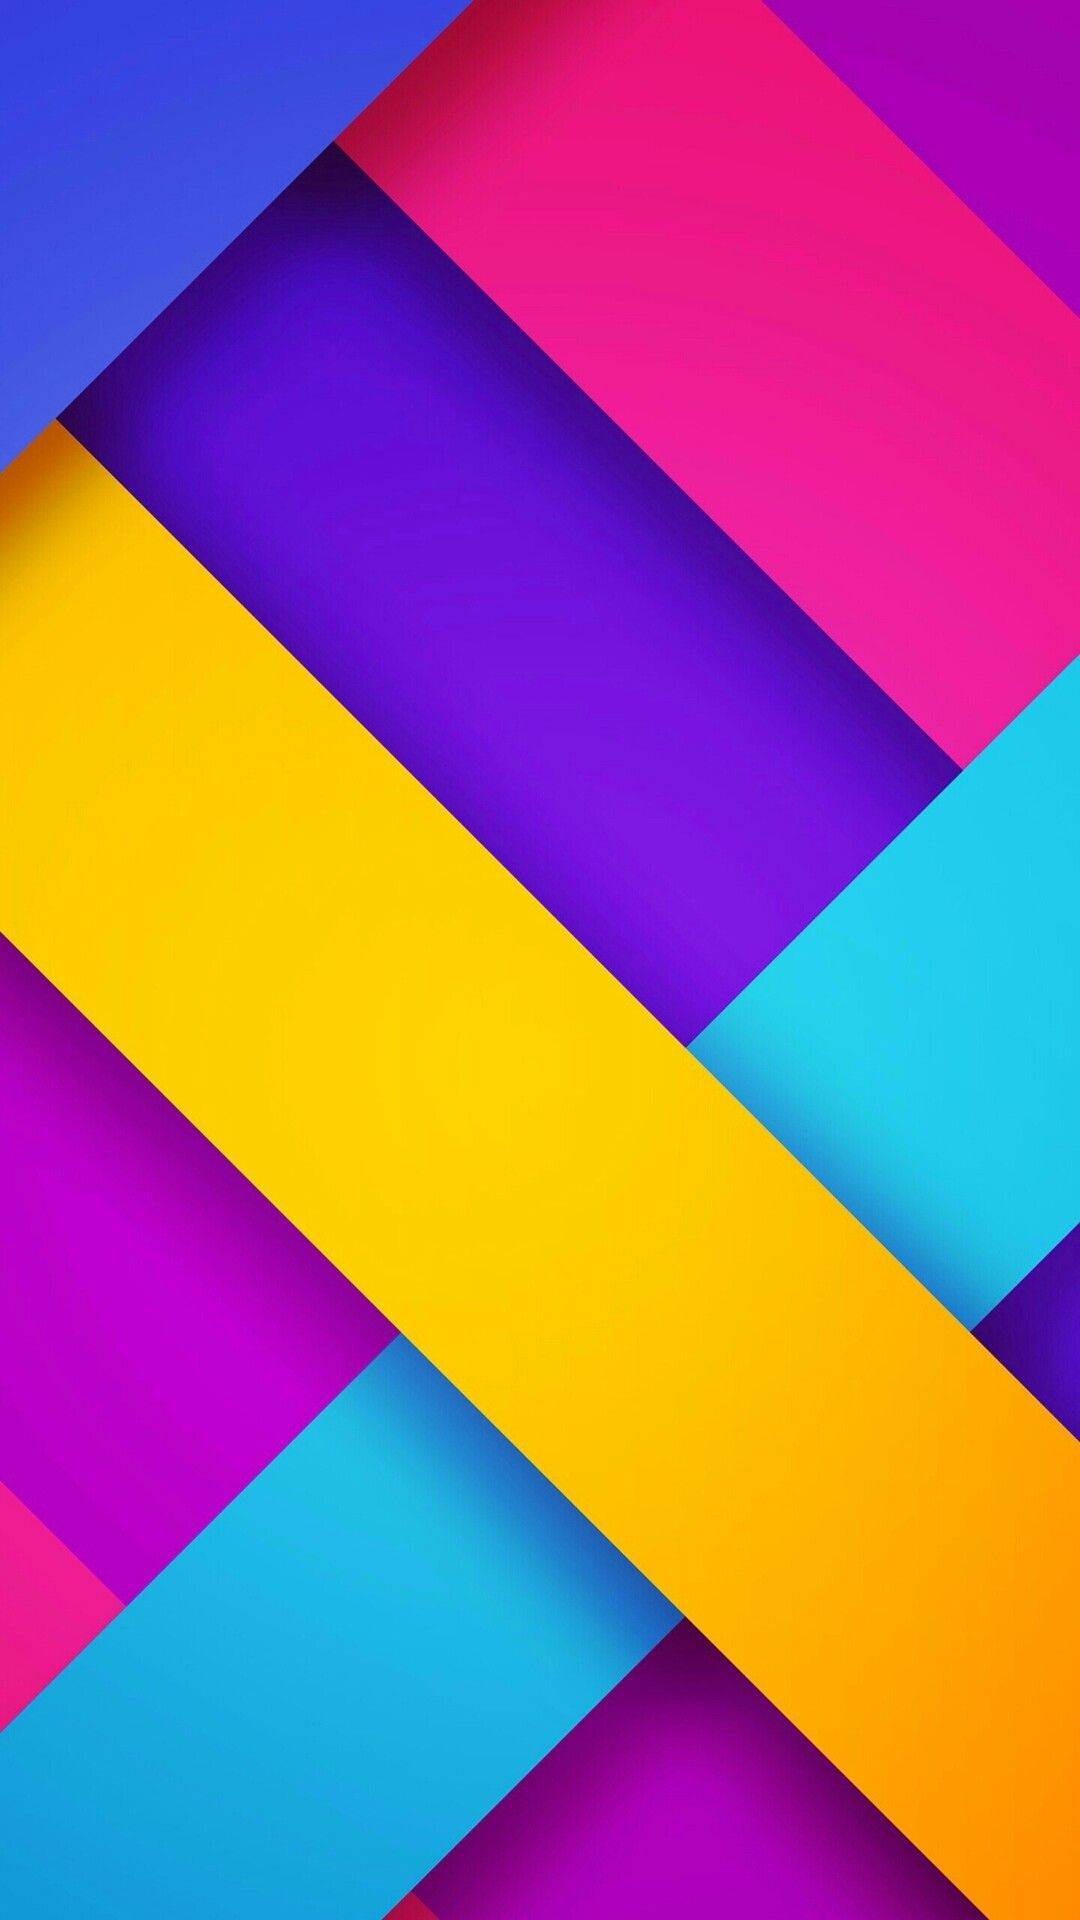 Colorful Hd Wallpapers For Mobile